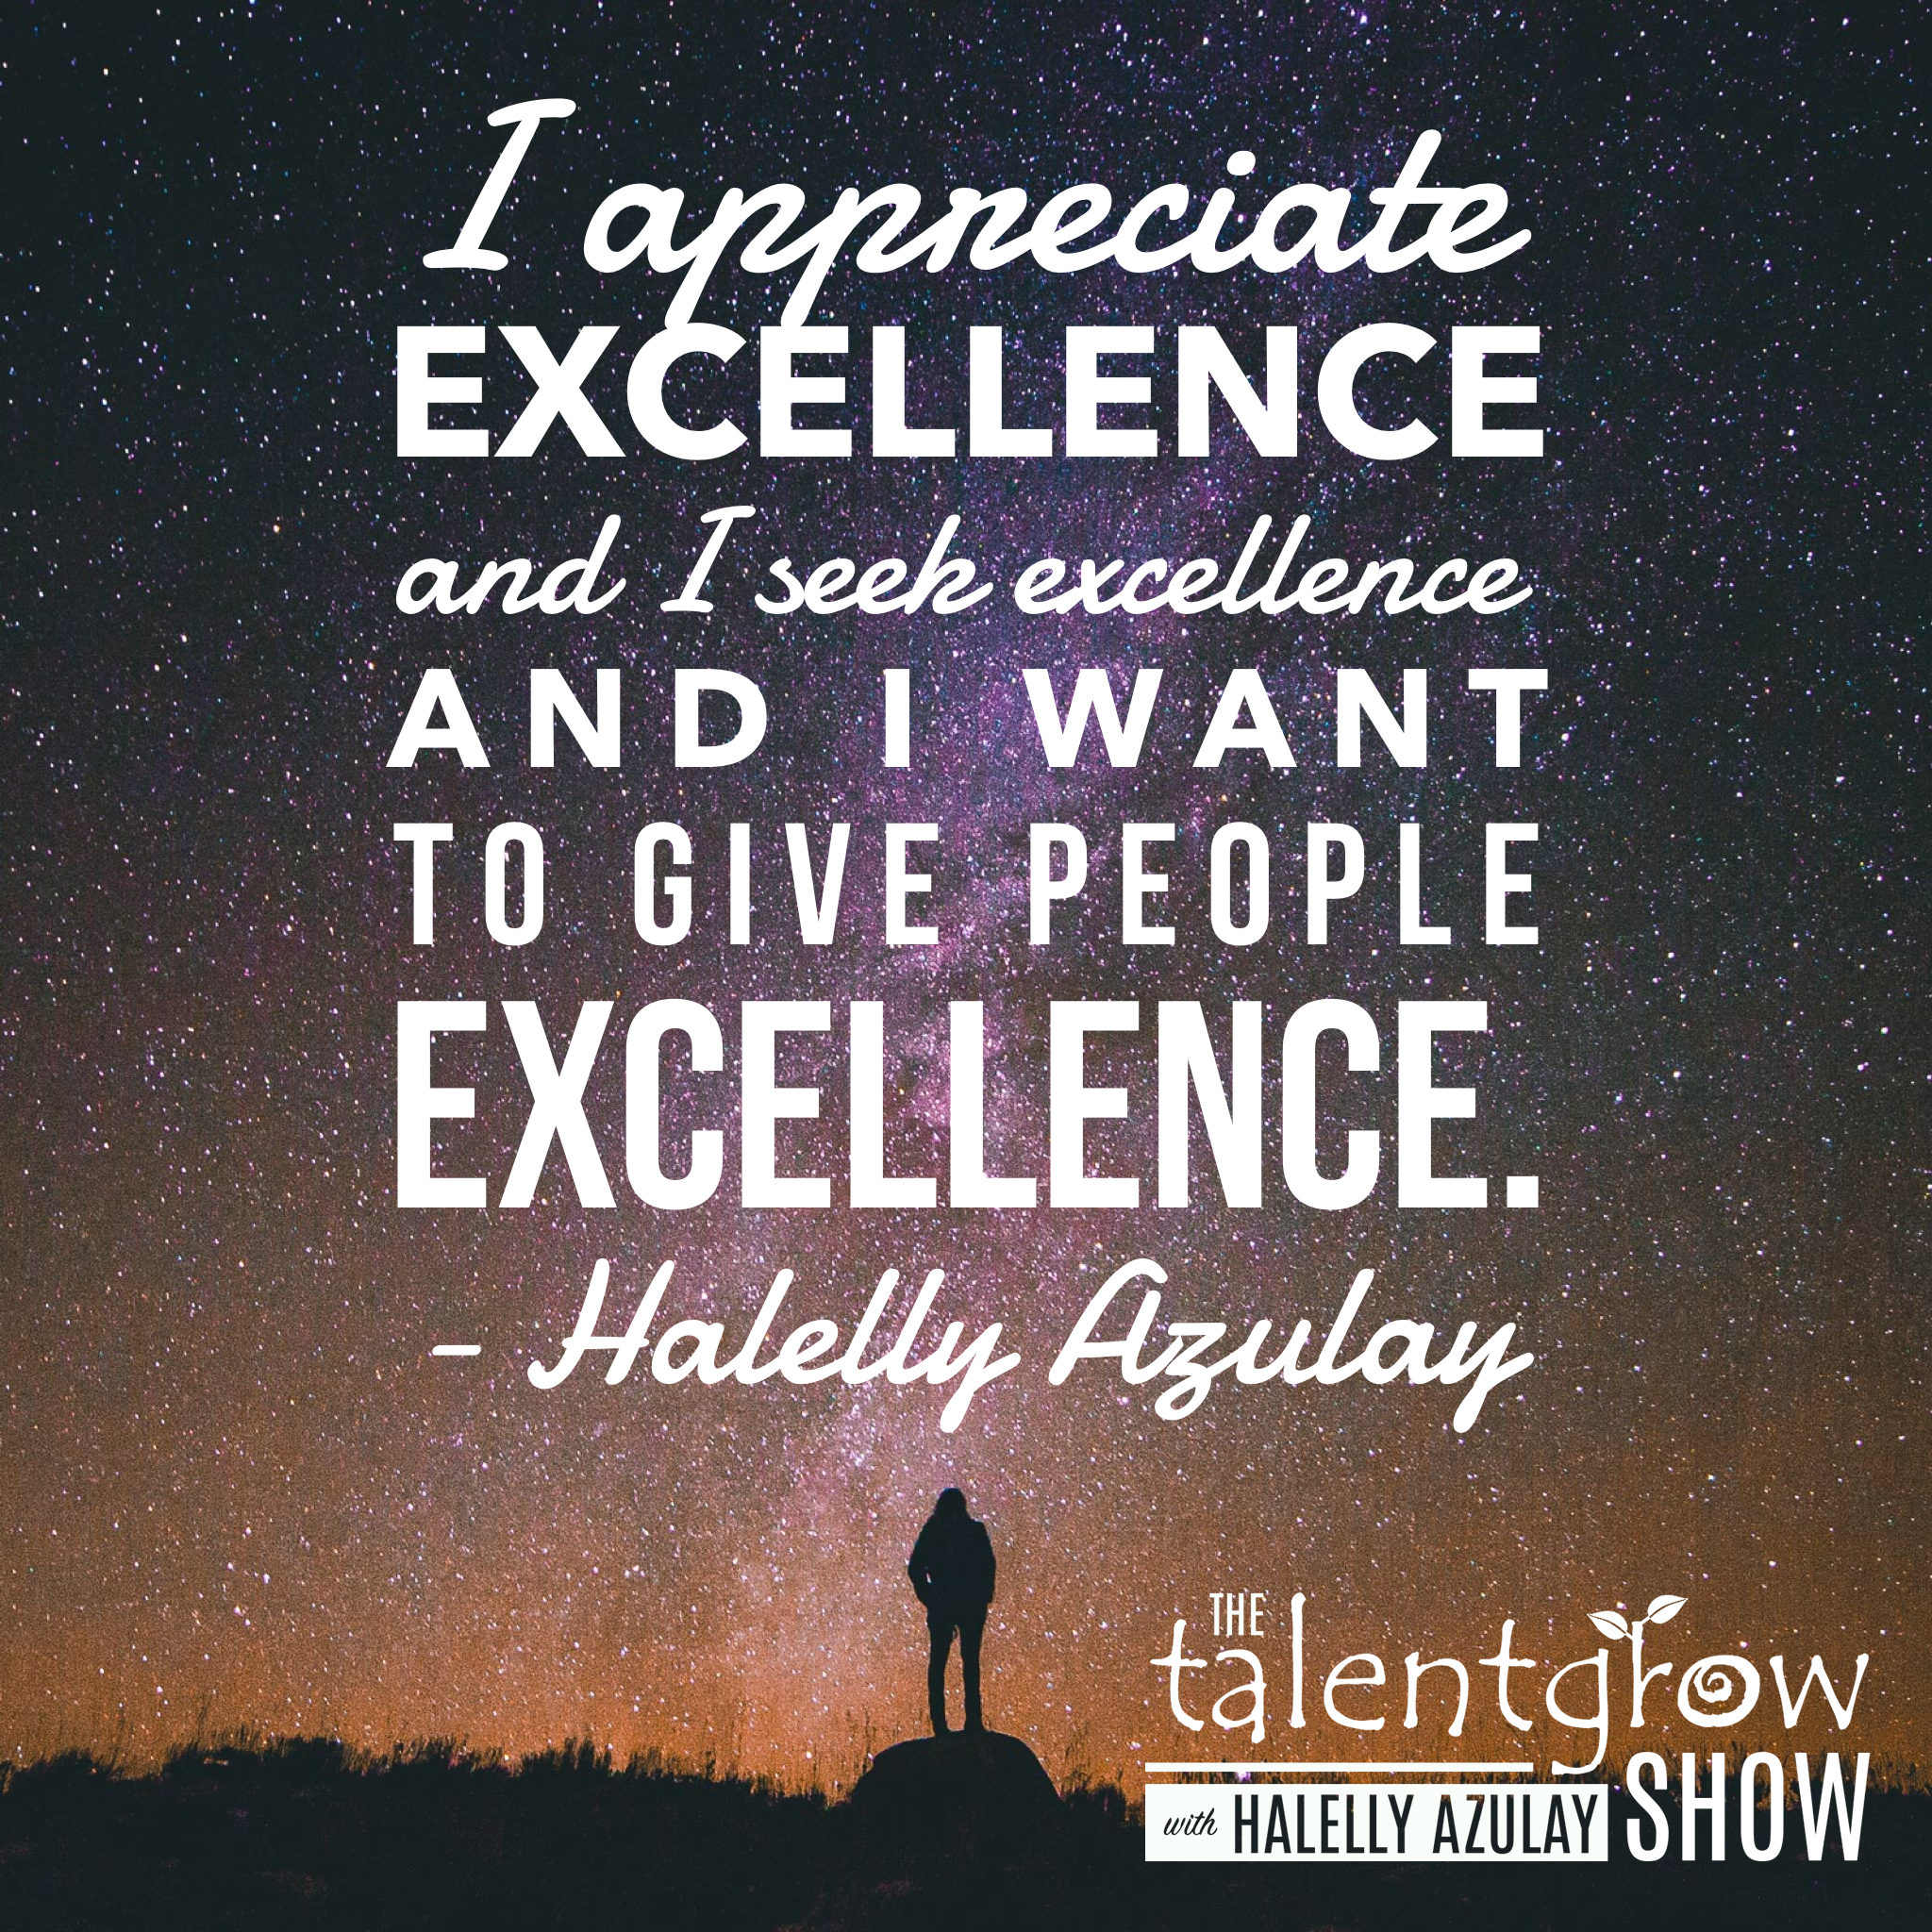 Appreciator of excellence - Halelly Azulay on the TalentGrow Show podcast Flipped Episode